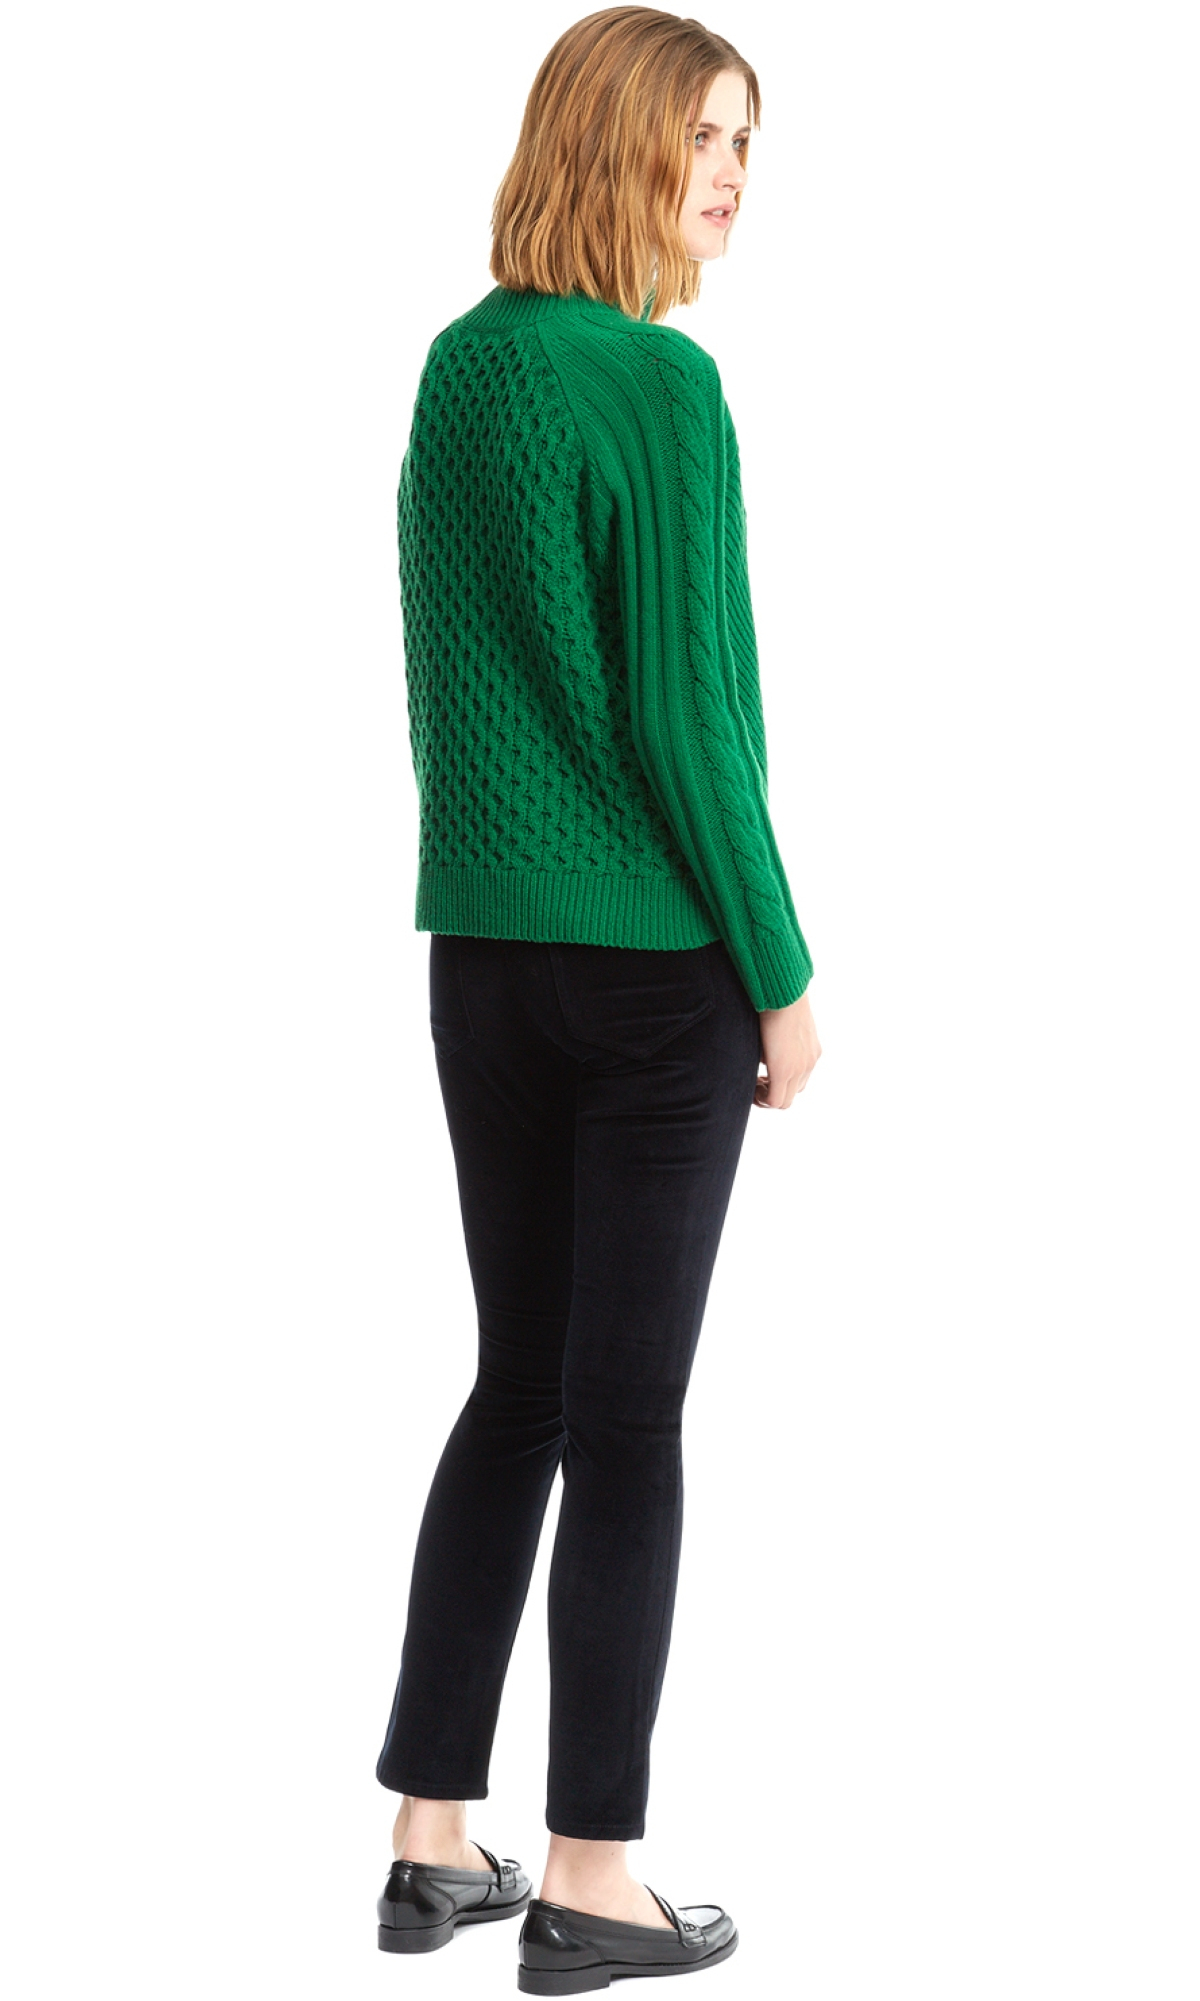 Nicole farhi Heavy Cable Knit Jumper in Green | Lyst